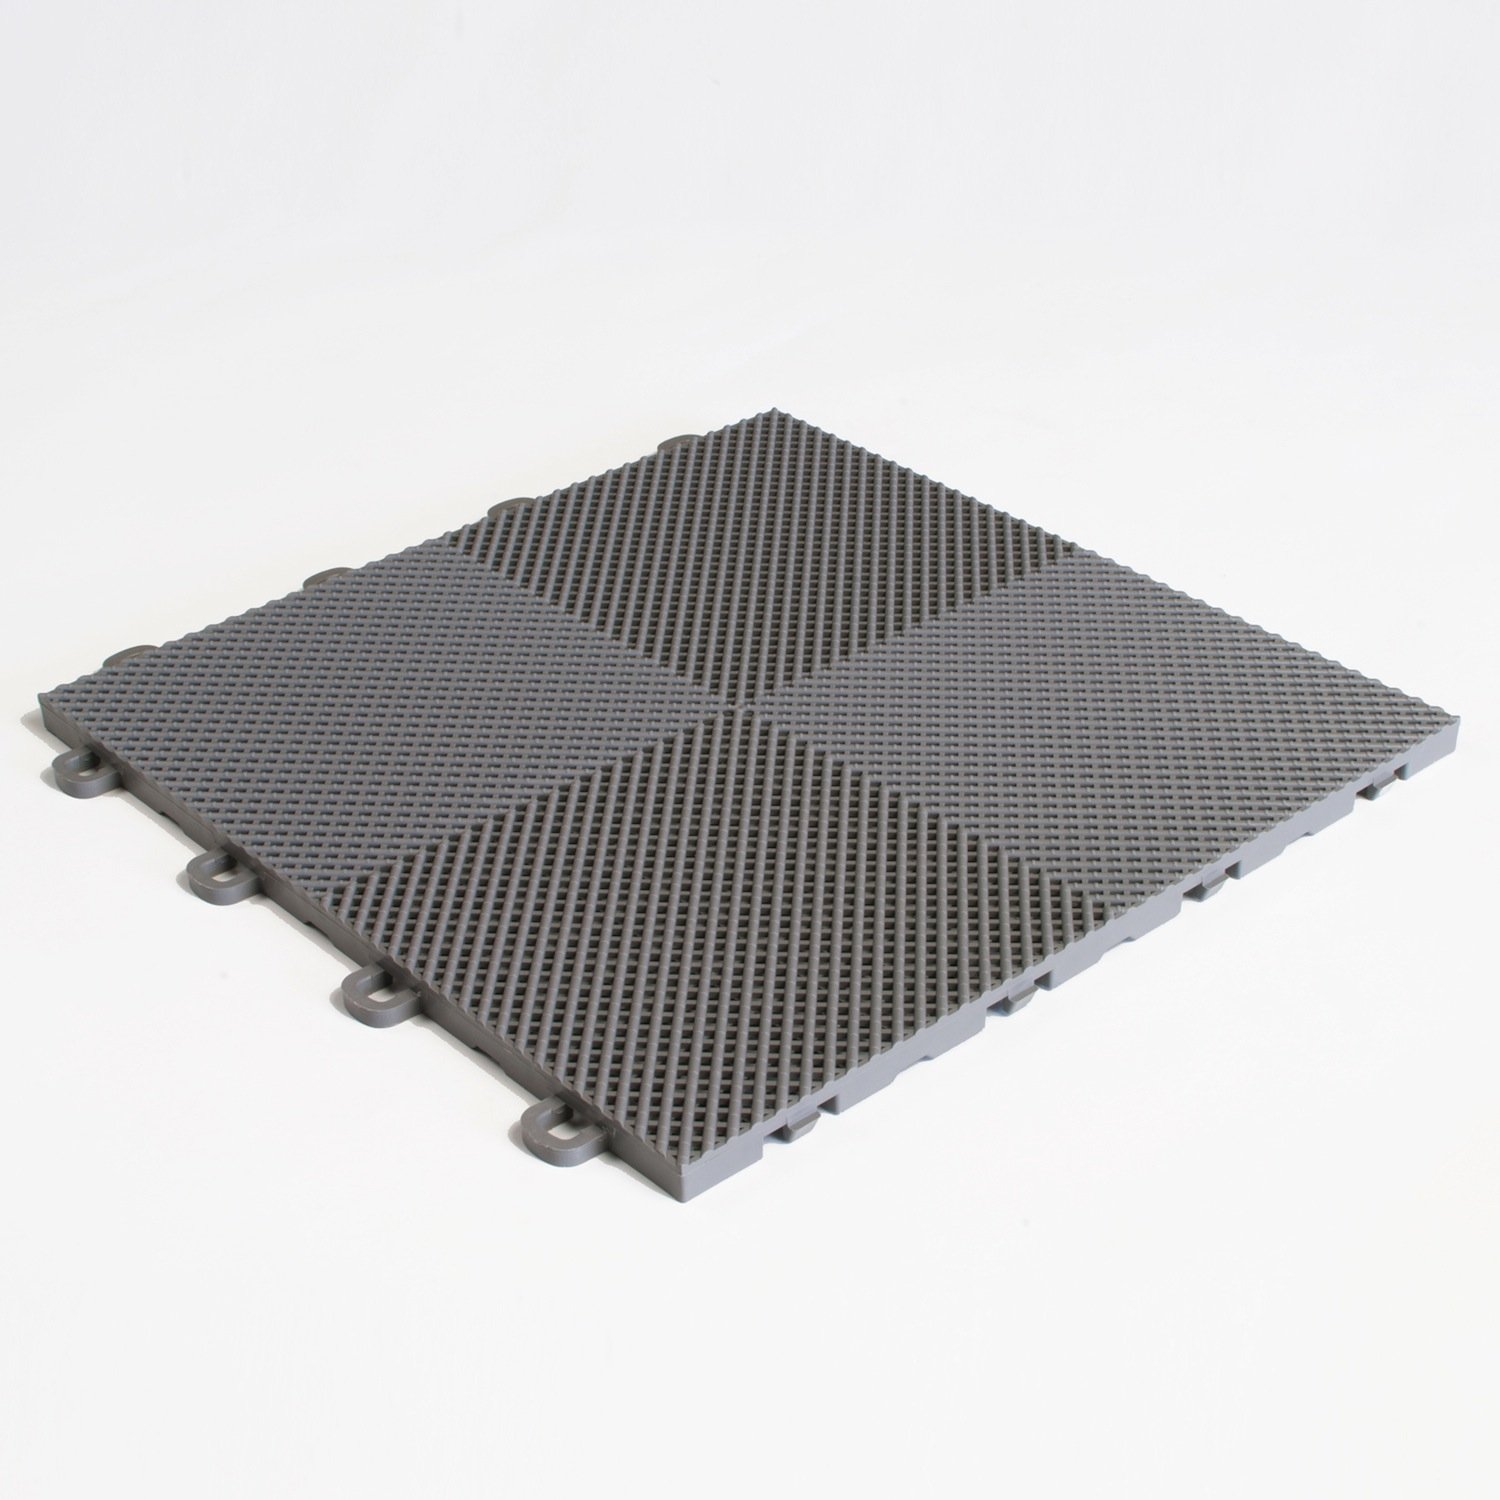 BlockTile B2US4630 Deck and Patio Flooring Interlocking Tiles Perforated Pack, Gray, 30-Pack by BlockTile (Image #1)